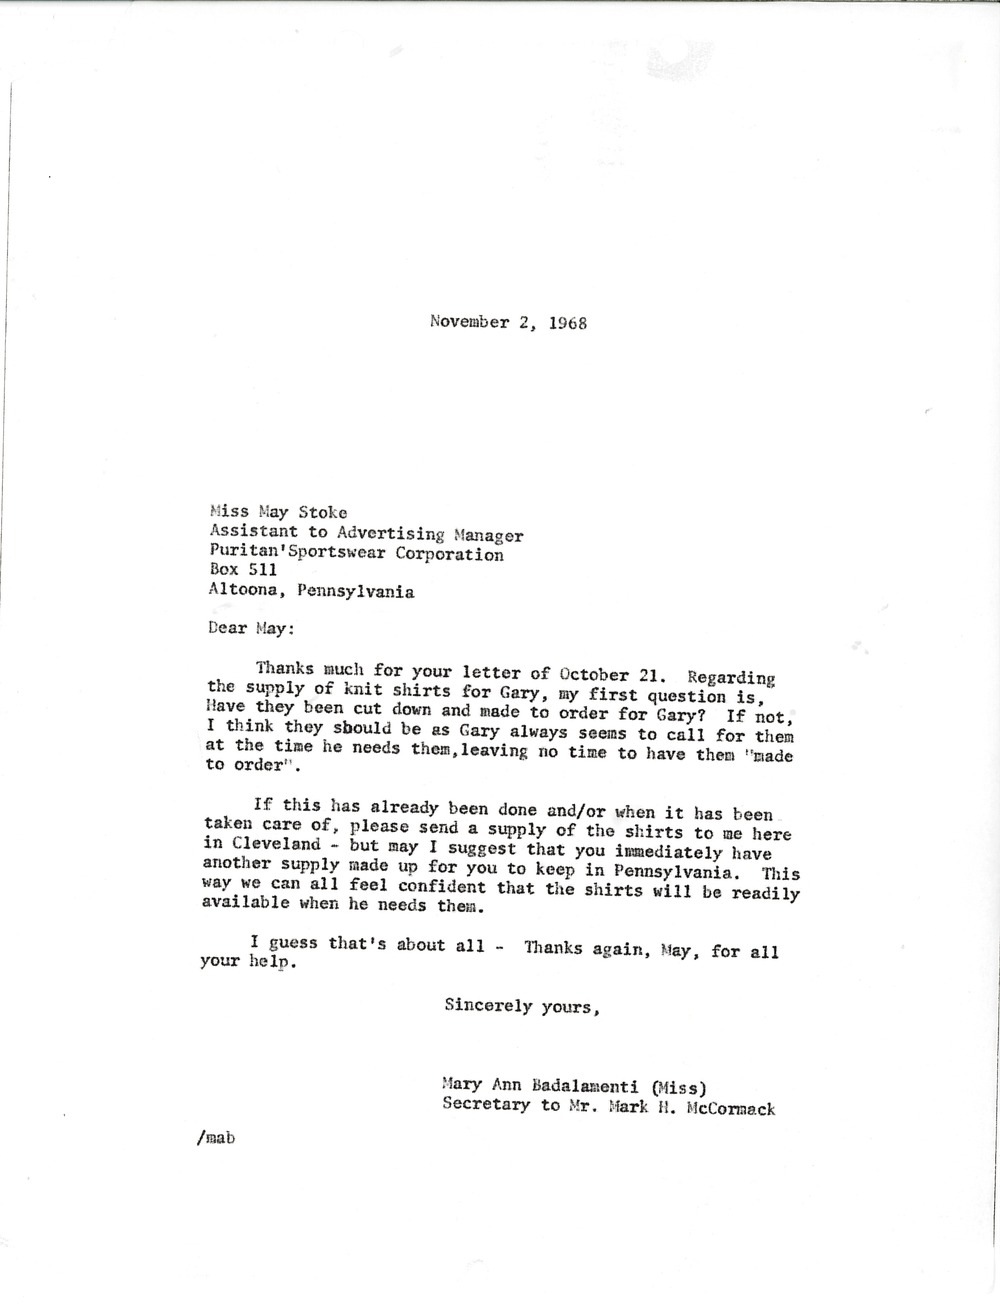 Letter from Mary Ann Badalamenti to May Stoke, November 2, 1968